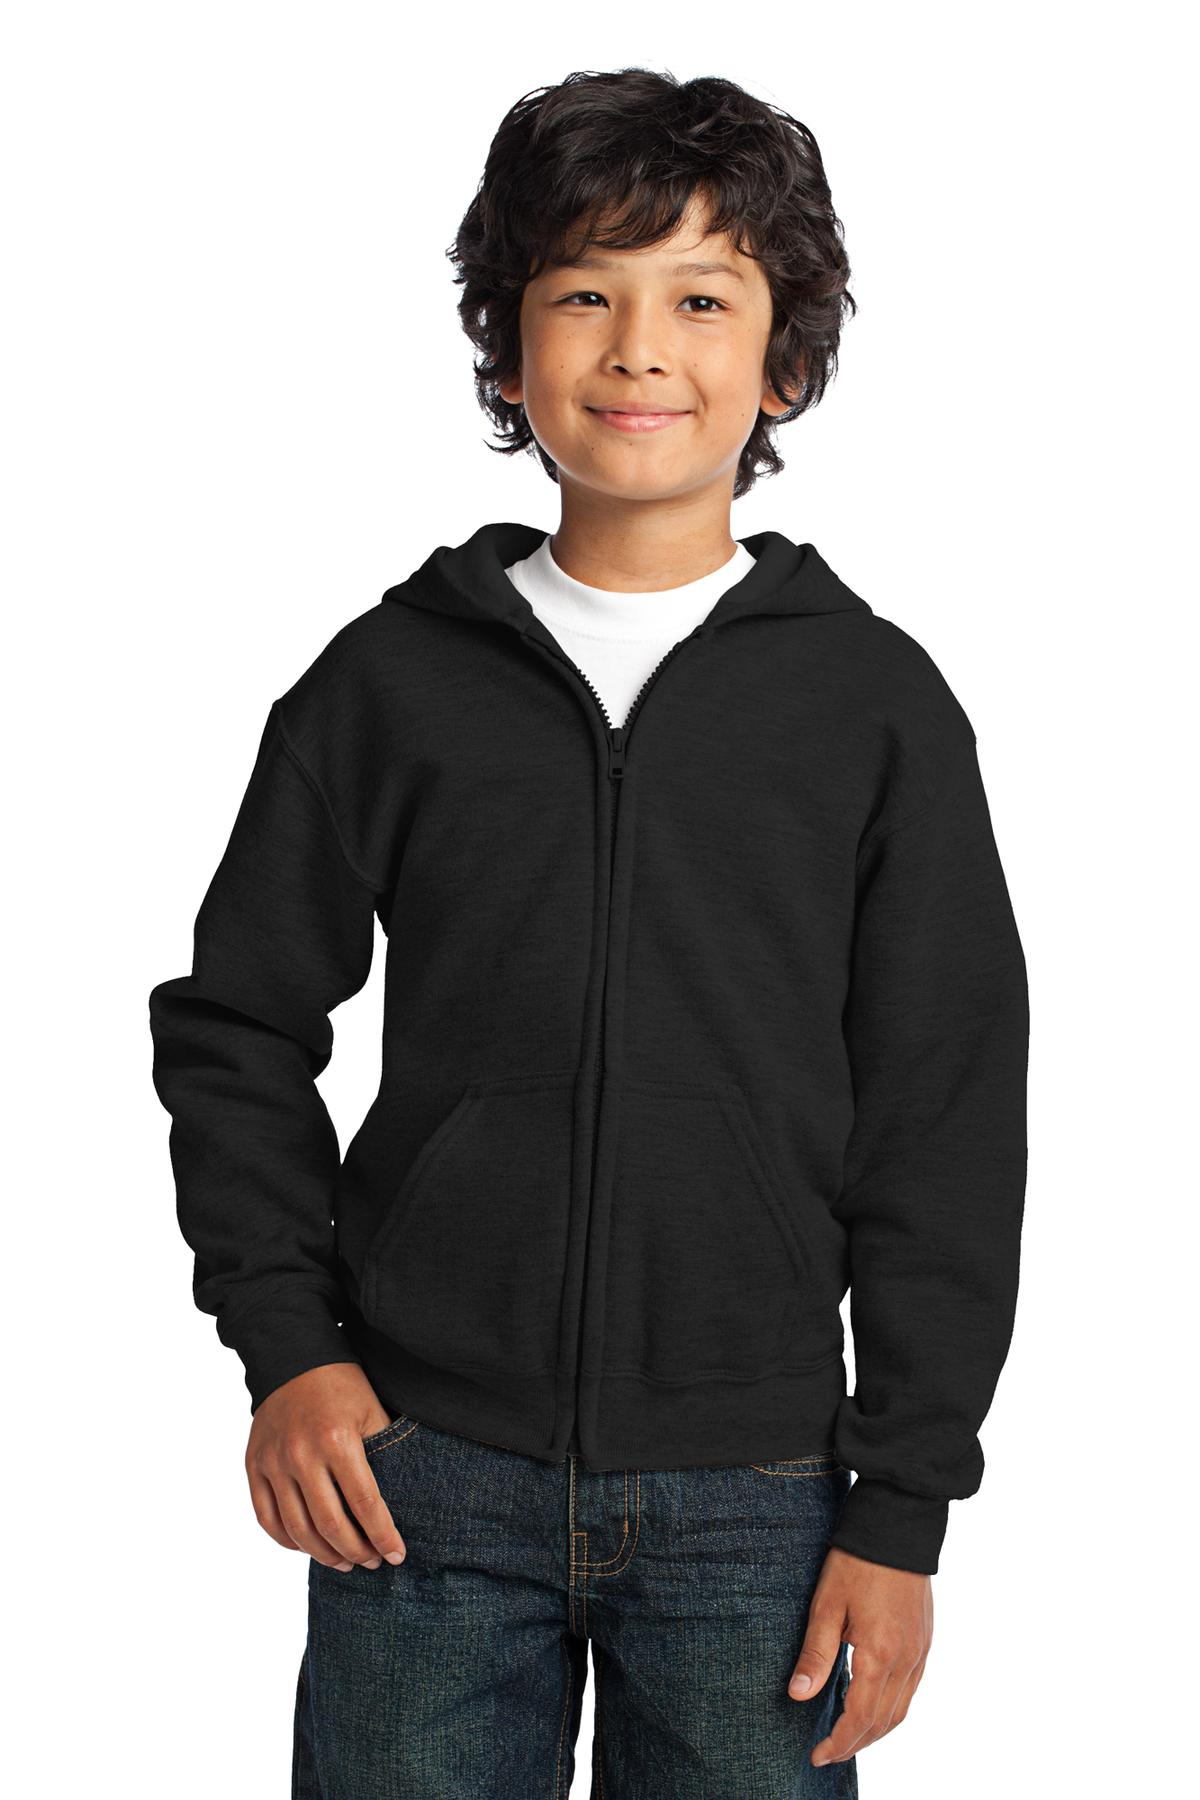 Gildan ®  Youth Heavy Blend ™  Full-Zip Hooded Sweatshirt. 18600B - Black